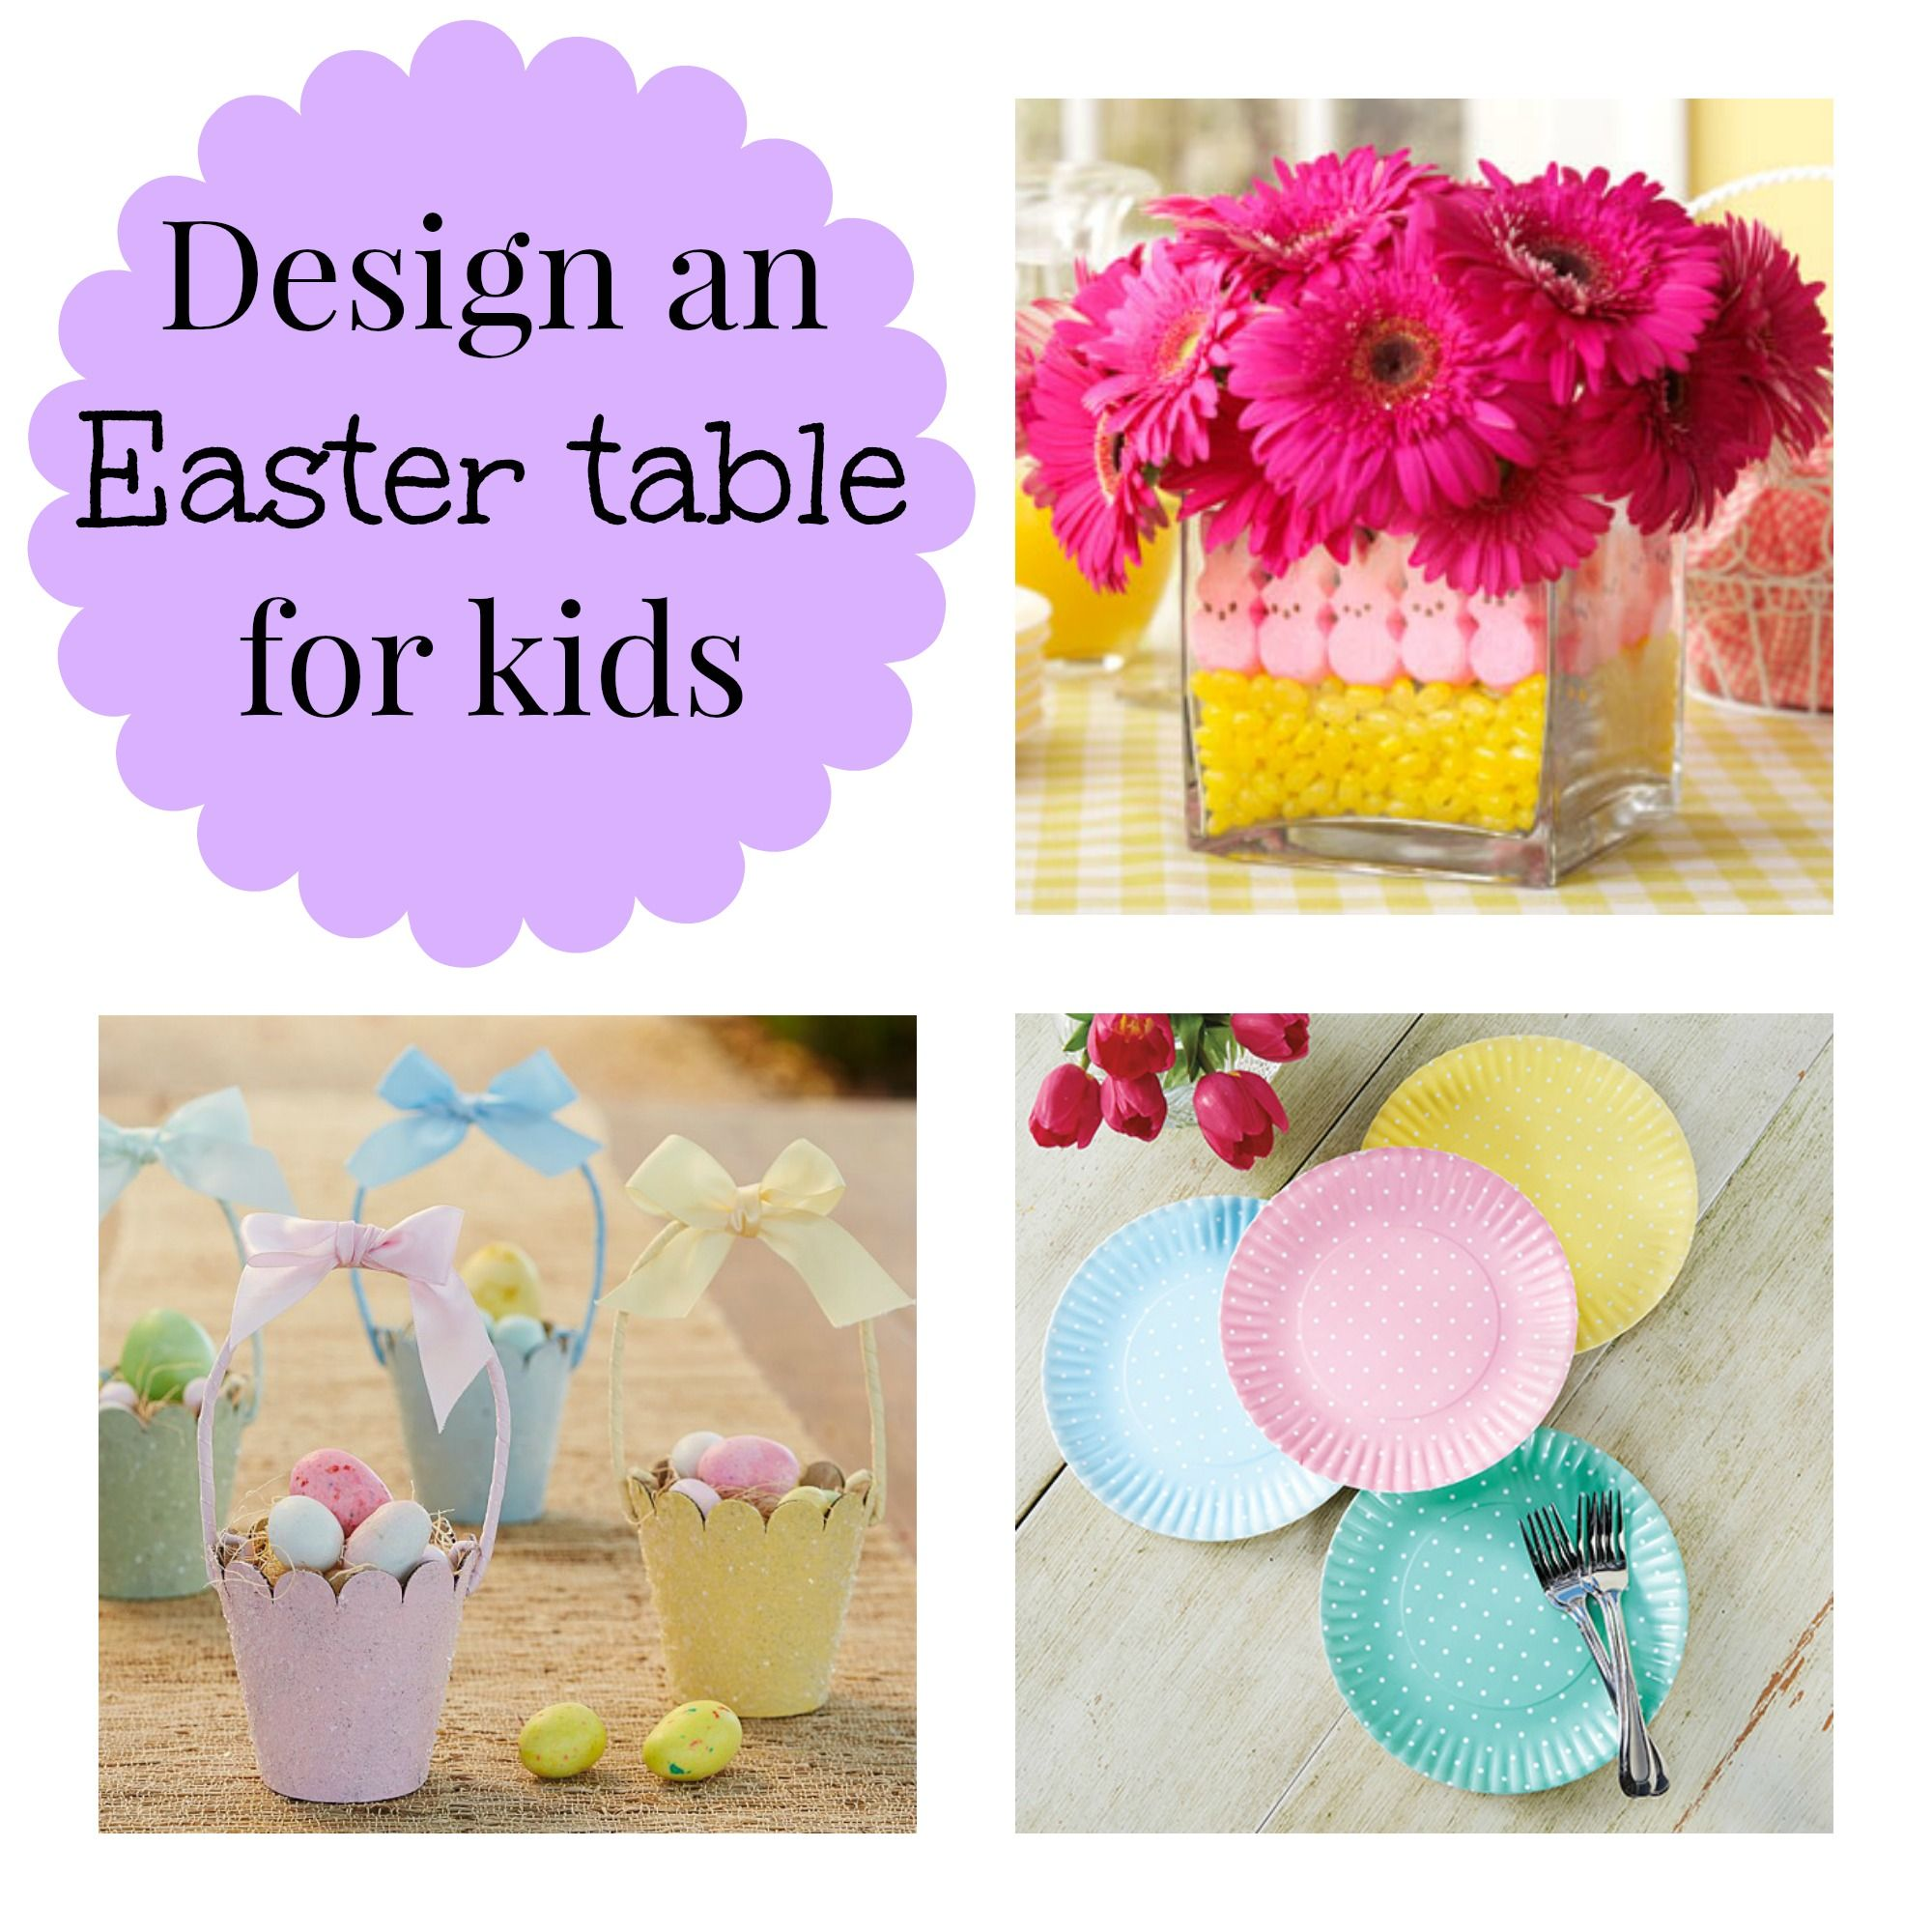 Design a darling Easter table for kids